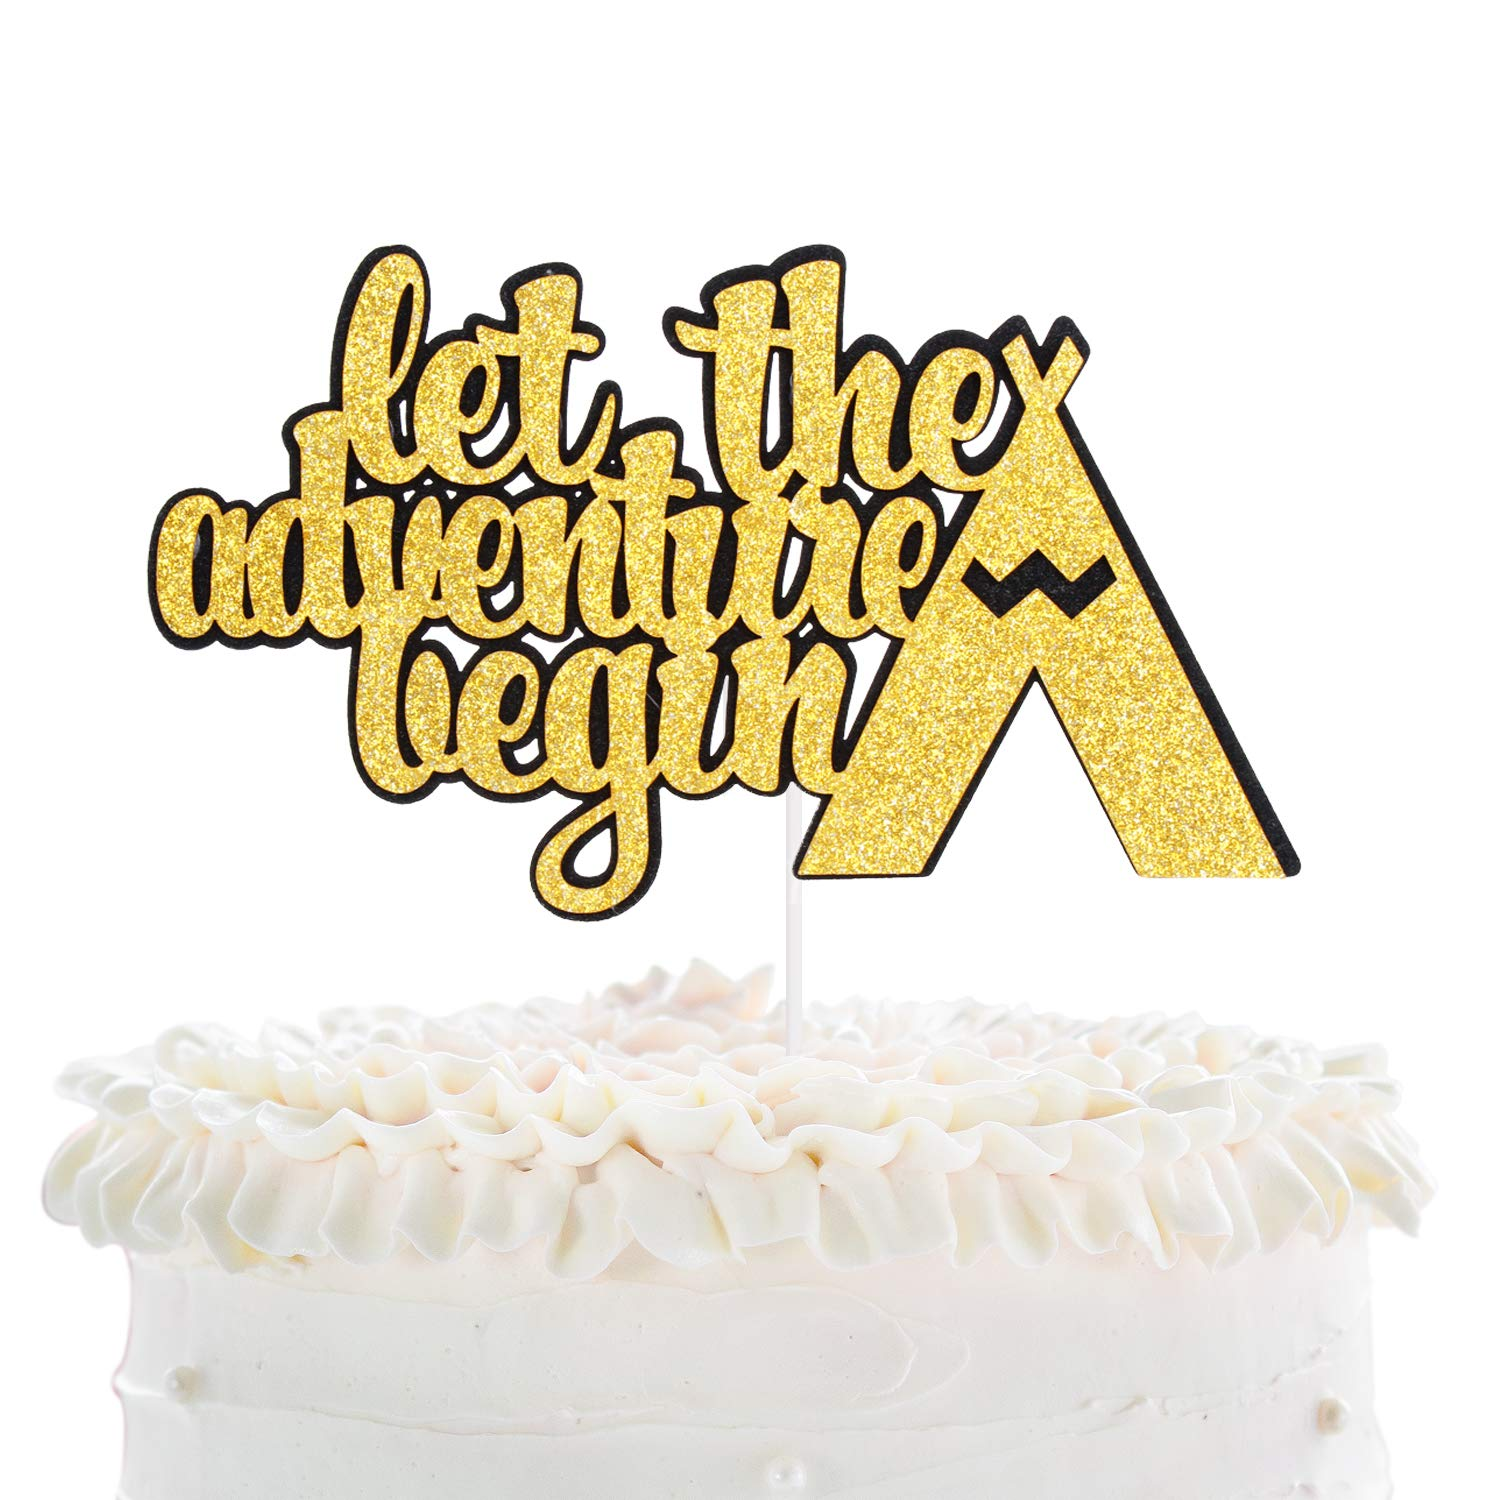 Personalized Adventure Awaits Graduation Party Glitter Cake Topper Decoration